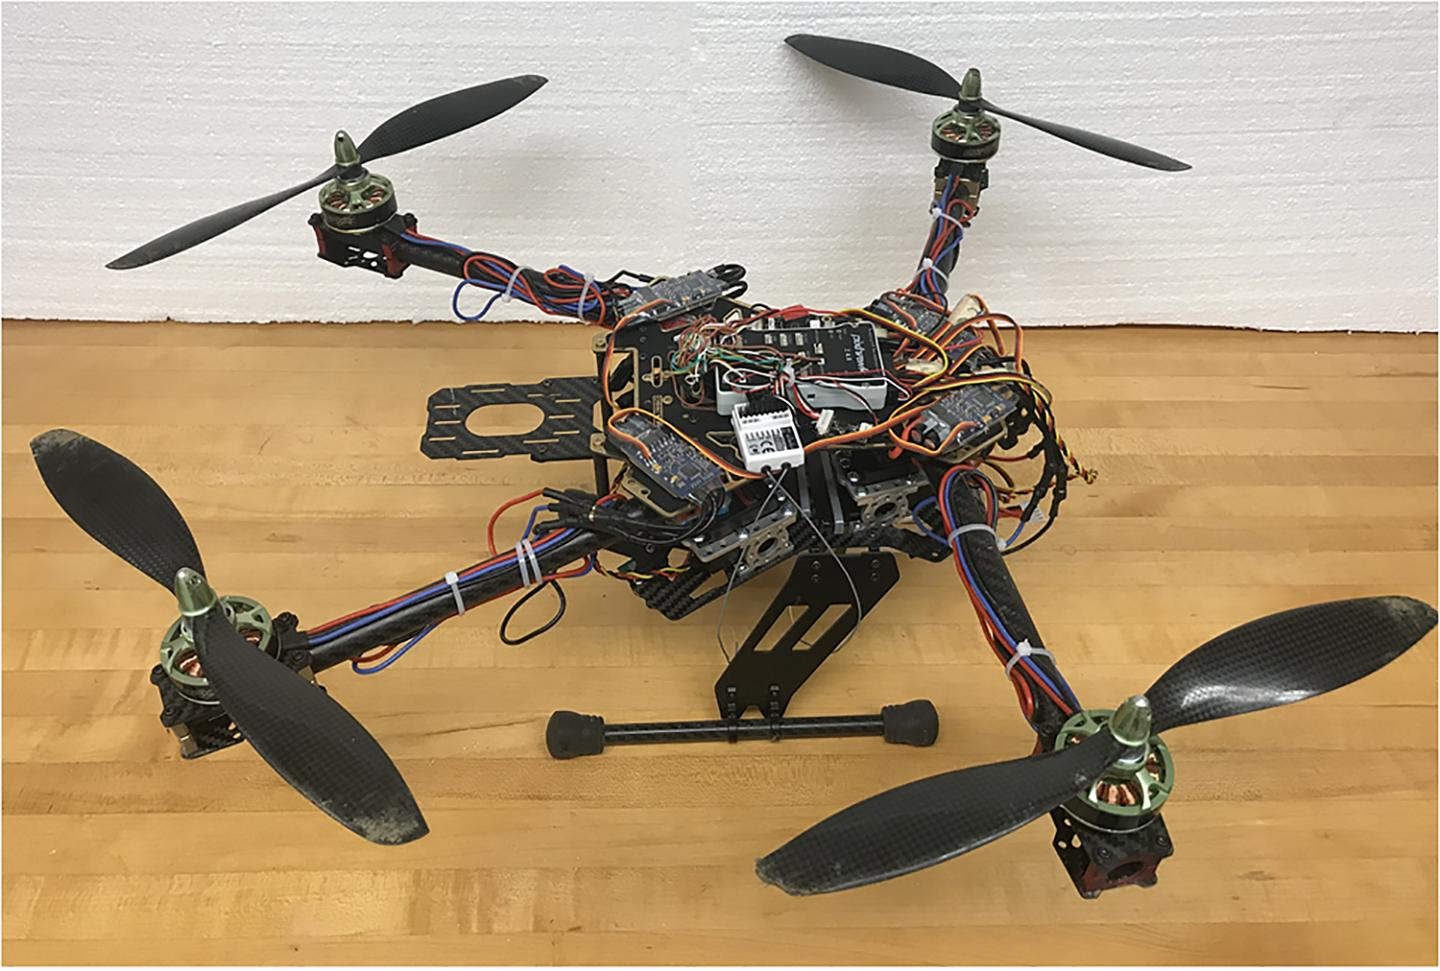 Insect-Inspired Arm Technology Aims to Improve Drones